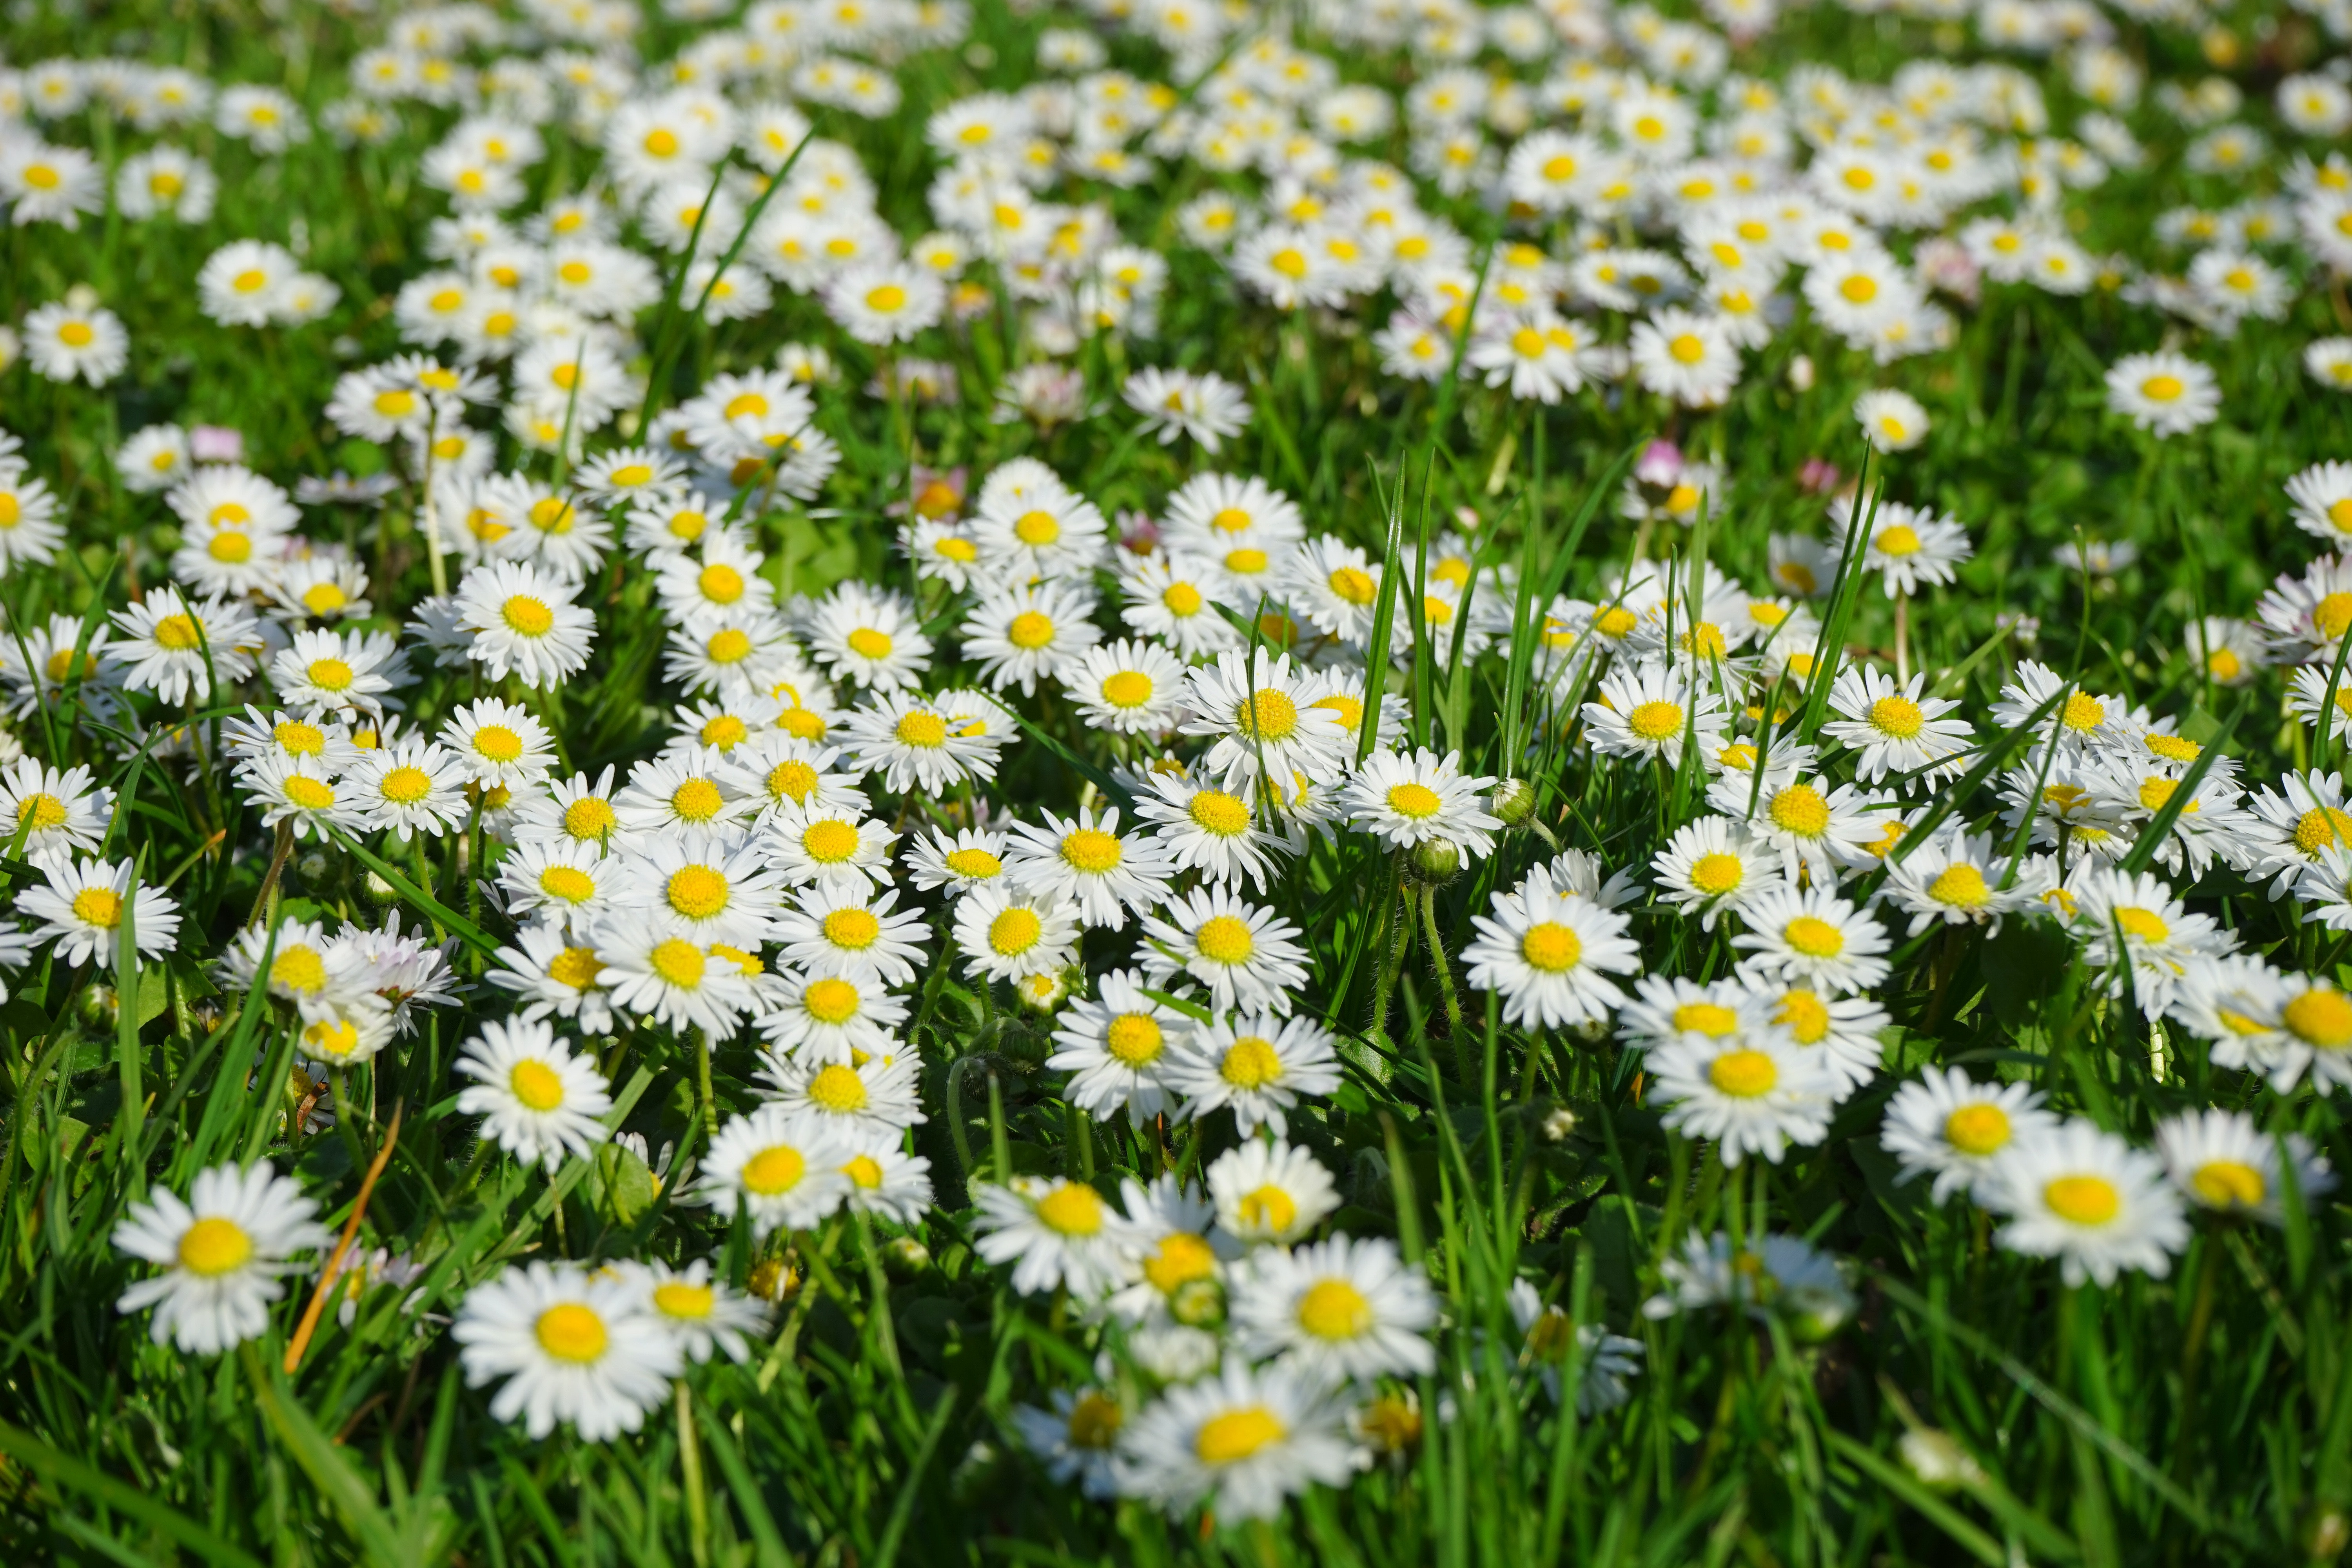 Free Photo Field Of White And Yellow Daisies Little Daisy Nature